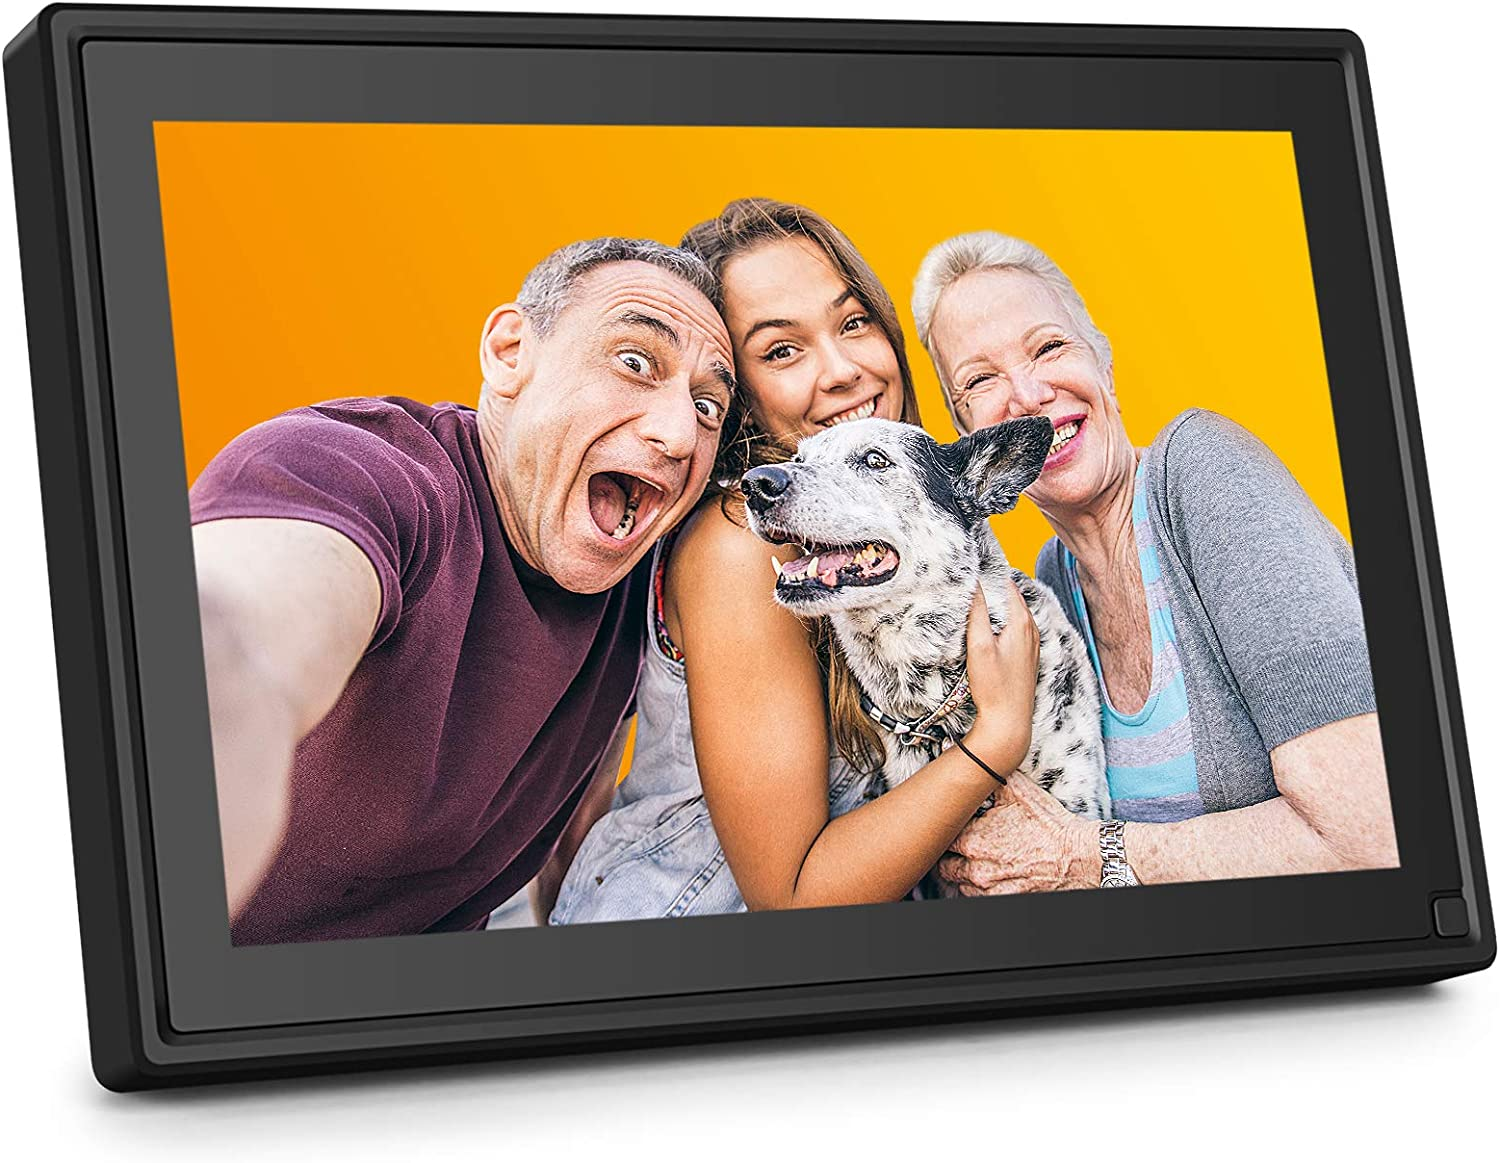 AiJoy 10 Inch Digital Picture Frame with WiFi, 16GB Photo Frame with Touch Screen, HD 1280x800 IPS, Smart Share Photo via Email, APP, Facebook, Twitter, Support 1080P Video/Music, USB, SD Card